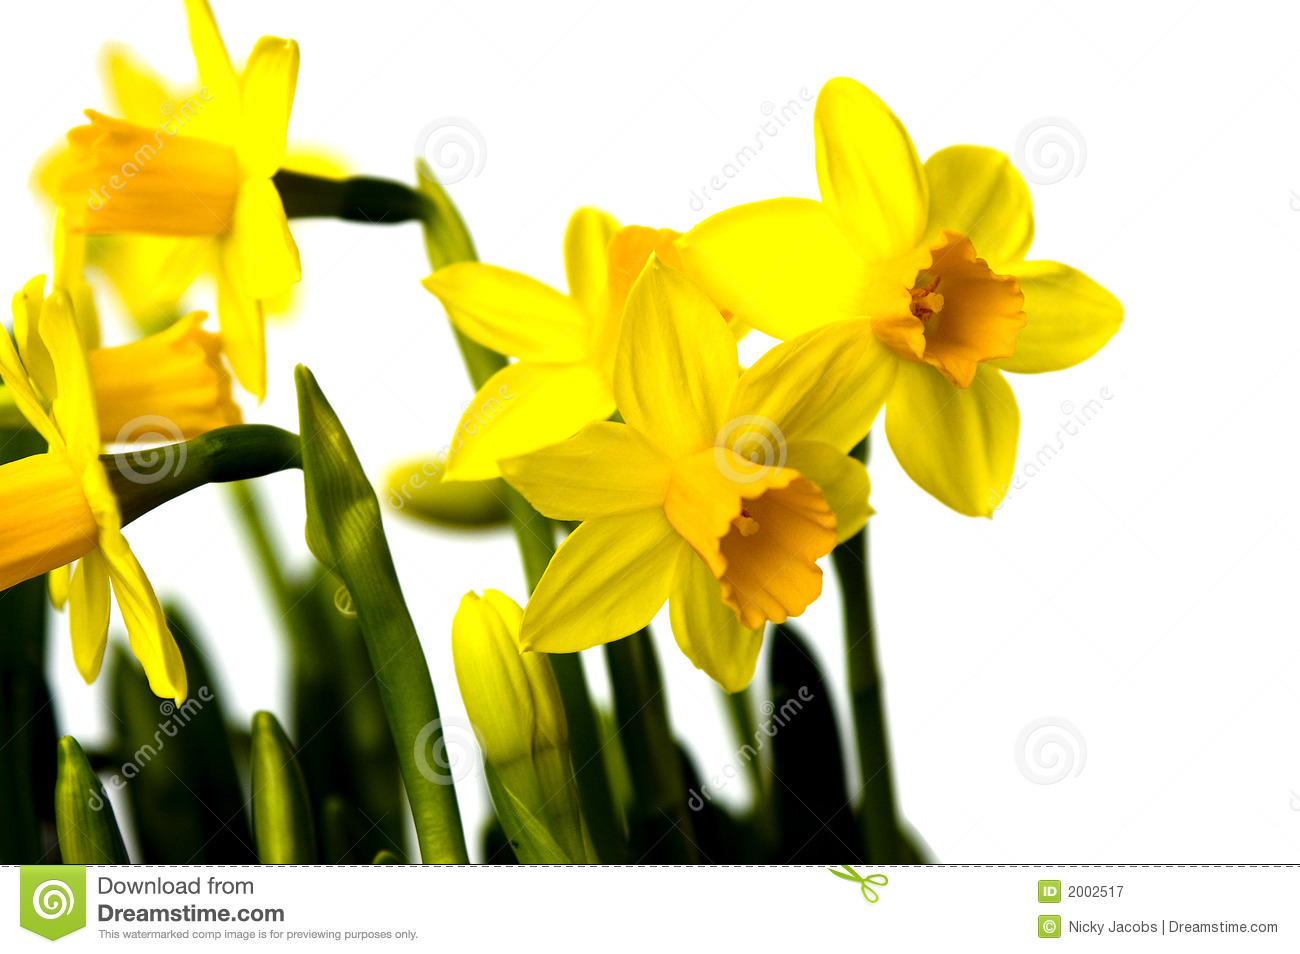 Easter Flowers Lily Daffodil Stock Image Image Of Lily Nature